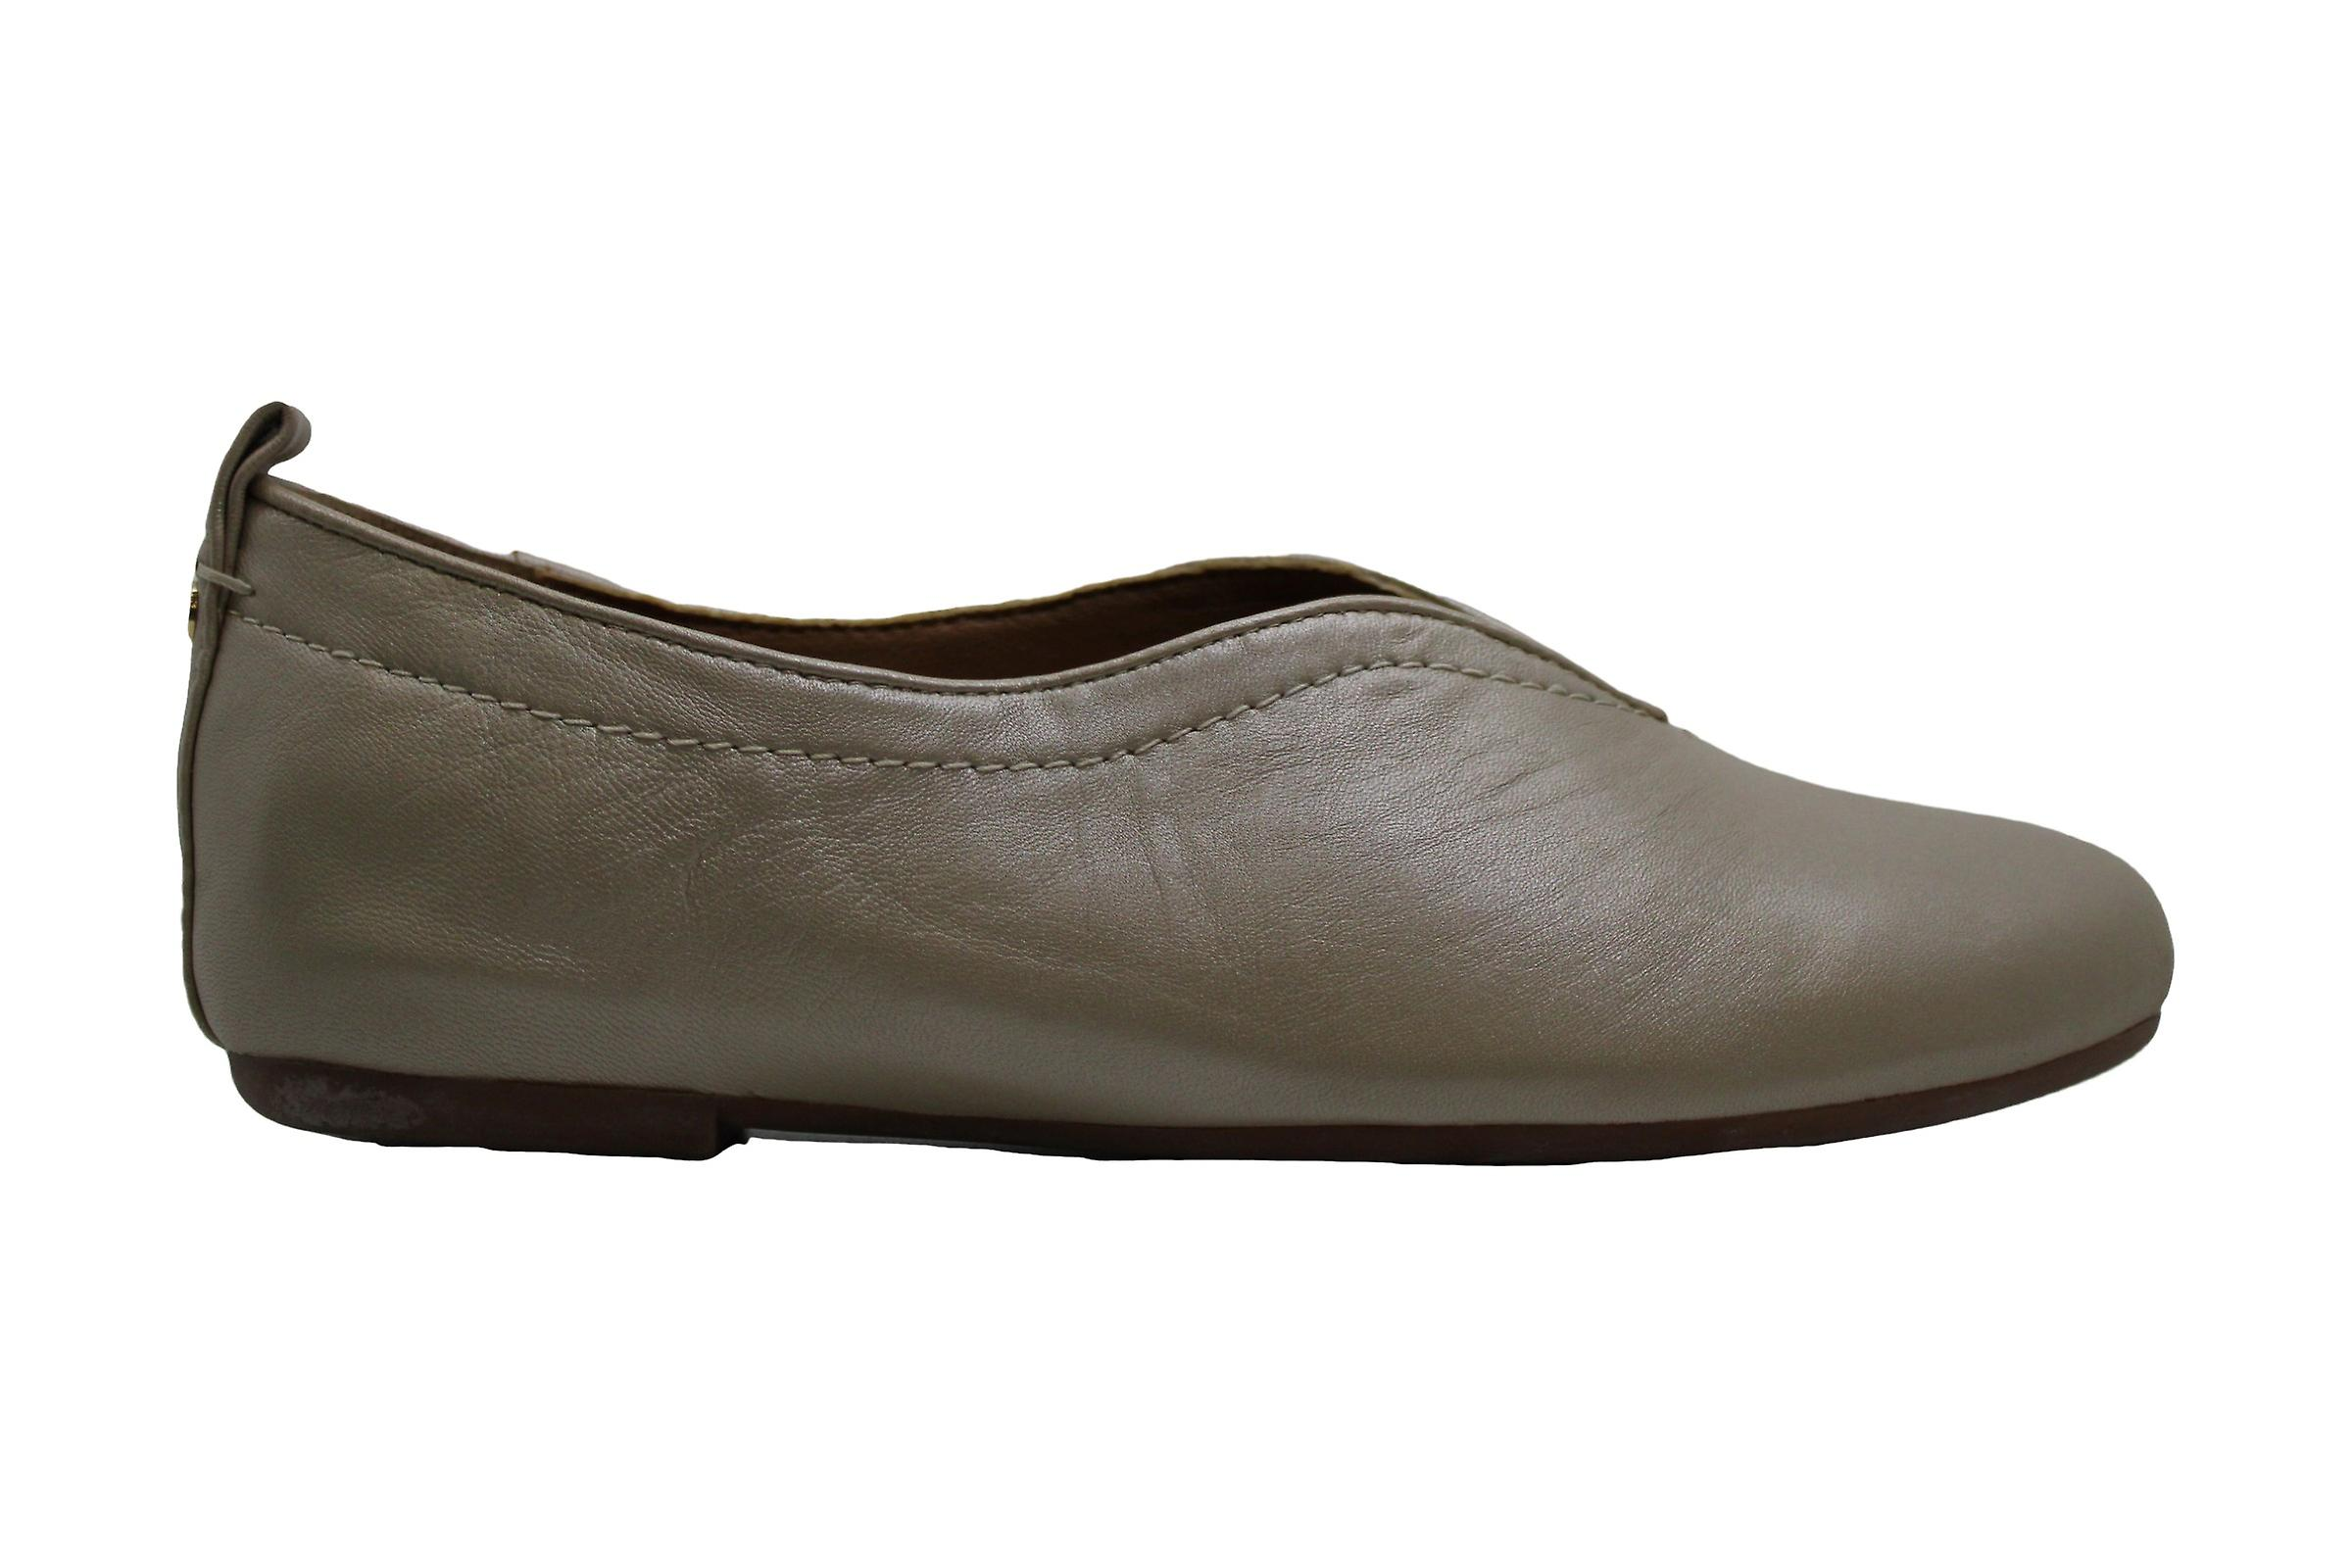 Lucca Lane Women's Shoes Bayla Leather Closed Toe Loafers 5xiF9